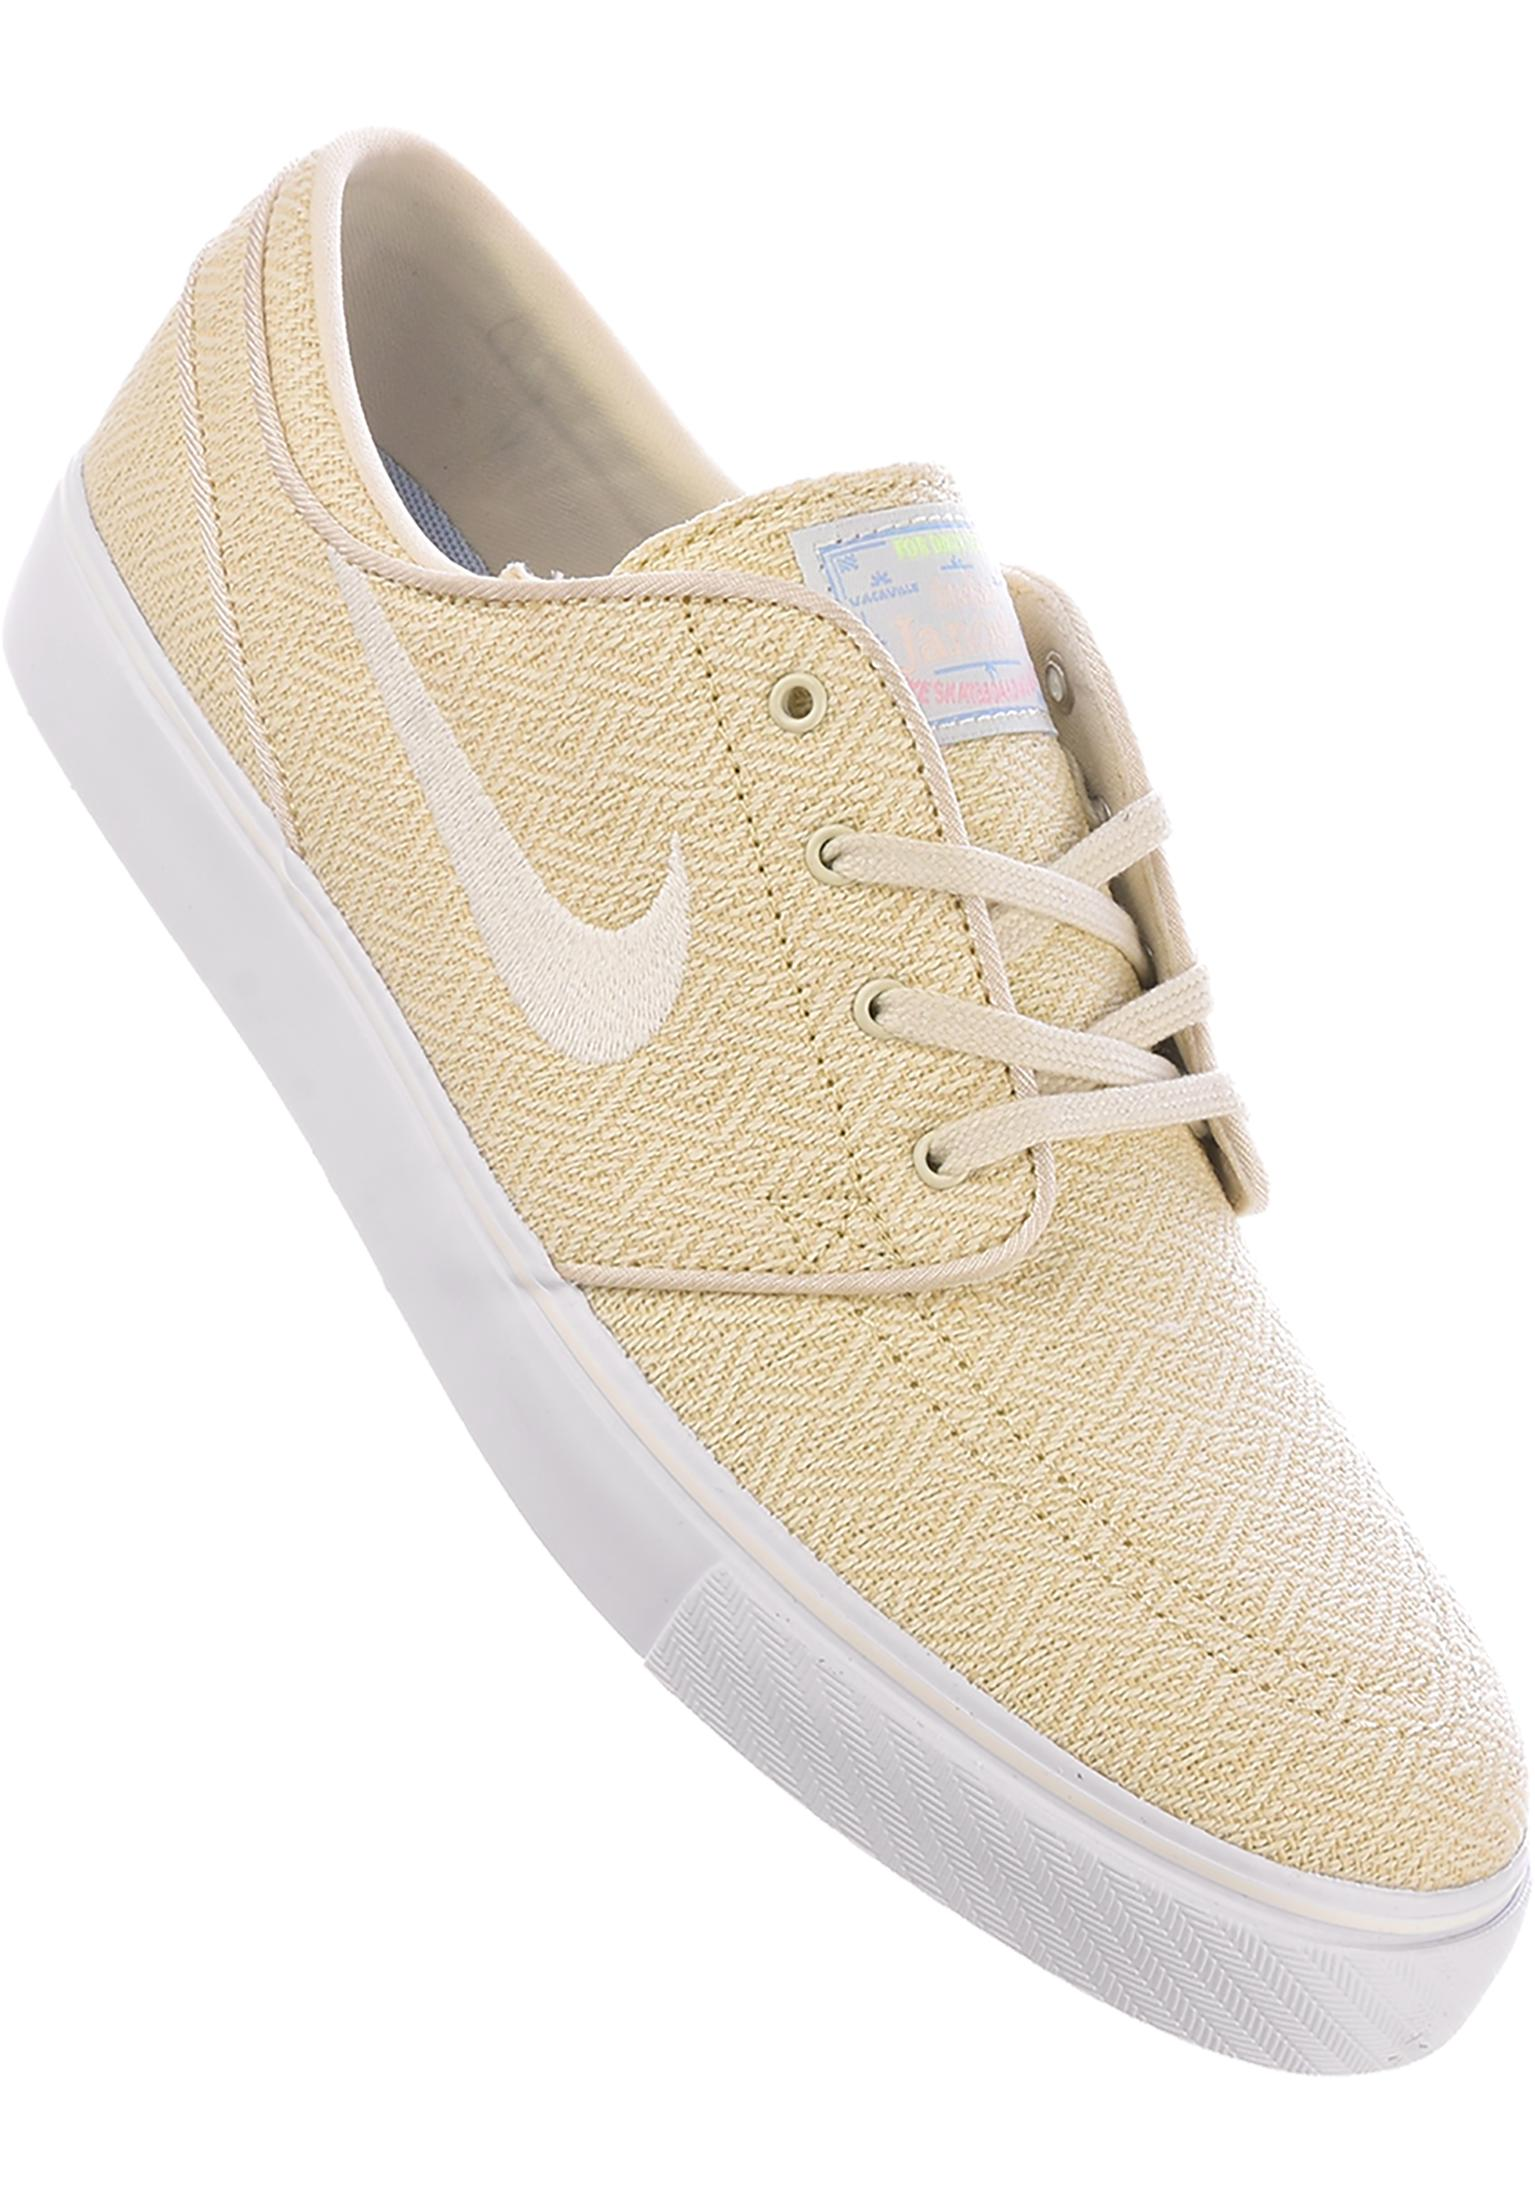 4d9d013d92 Zoom Stefan Janoski CNVS Nike SB All Shoes in fossil-sail-white for Men